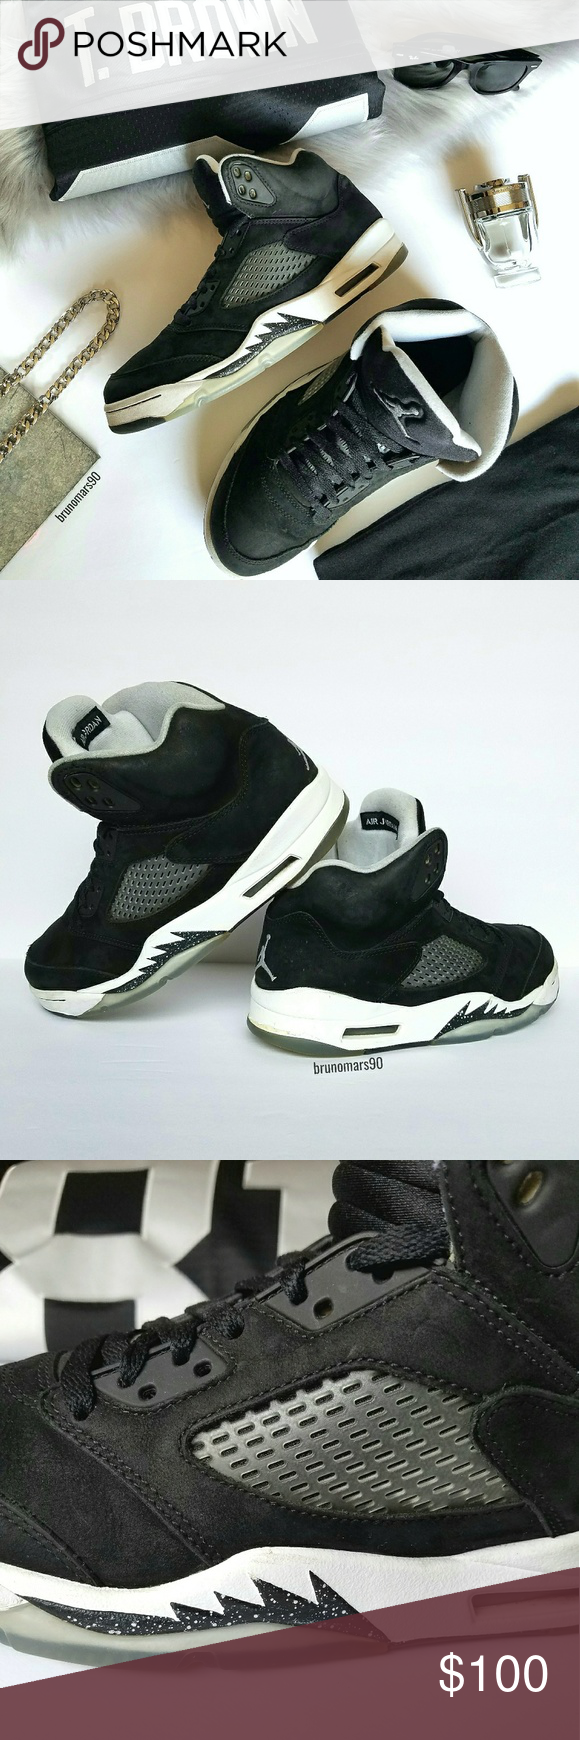 a74d2b79d5c25b 🎉HP🎉 Air Jordan 5 Oreo Sneakers Men s black suede shoes. Worn a few times  without box. Some wear around outer white edges with some peeling on back  of ...